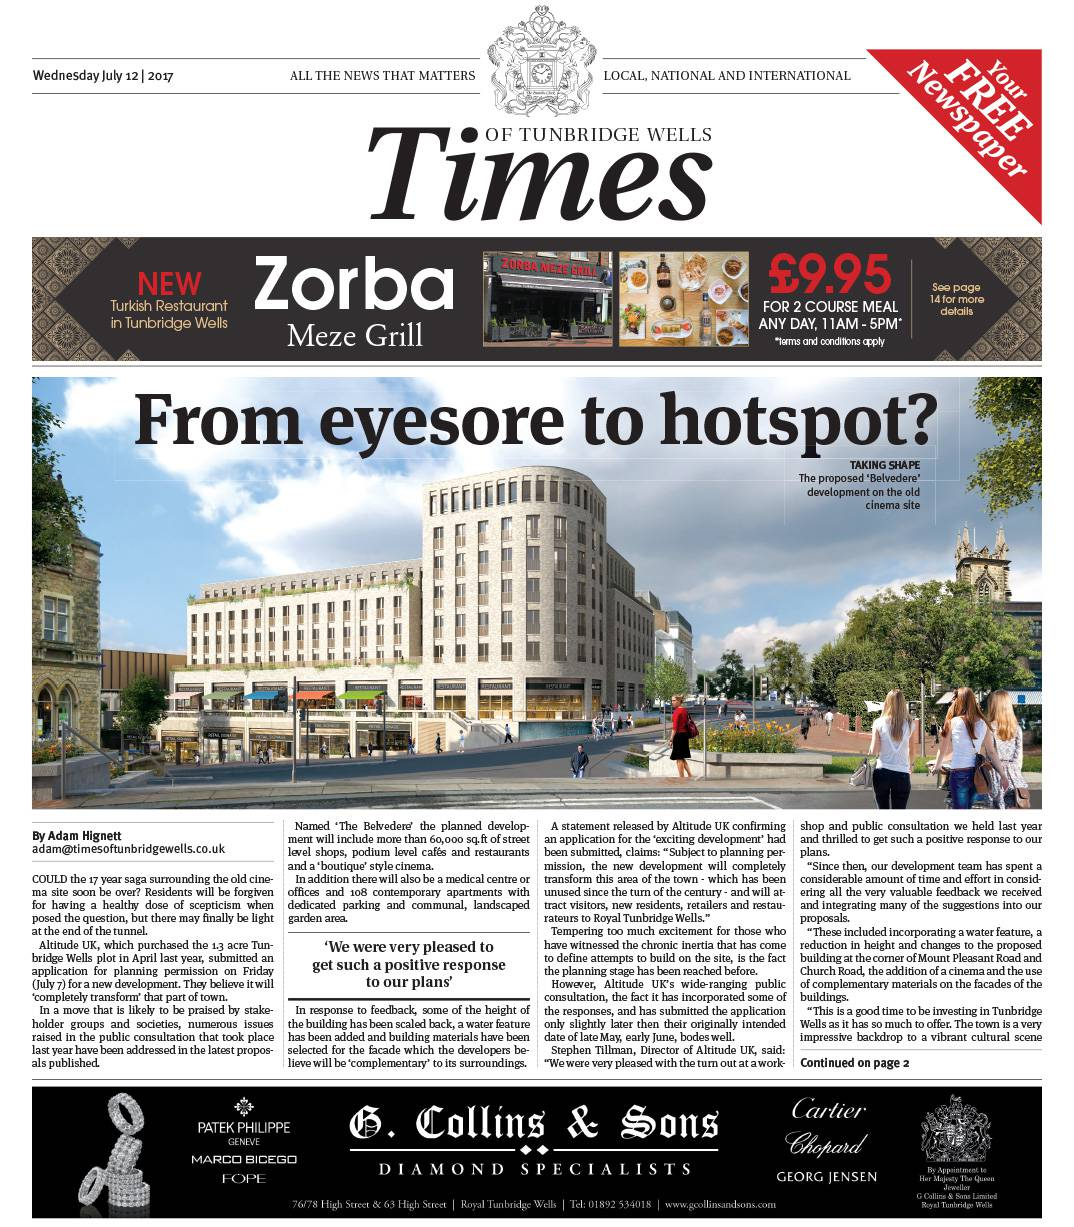 Read the Times of Tunbridge Wells 12th July 2017